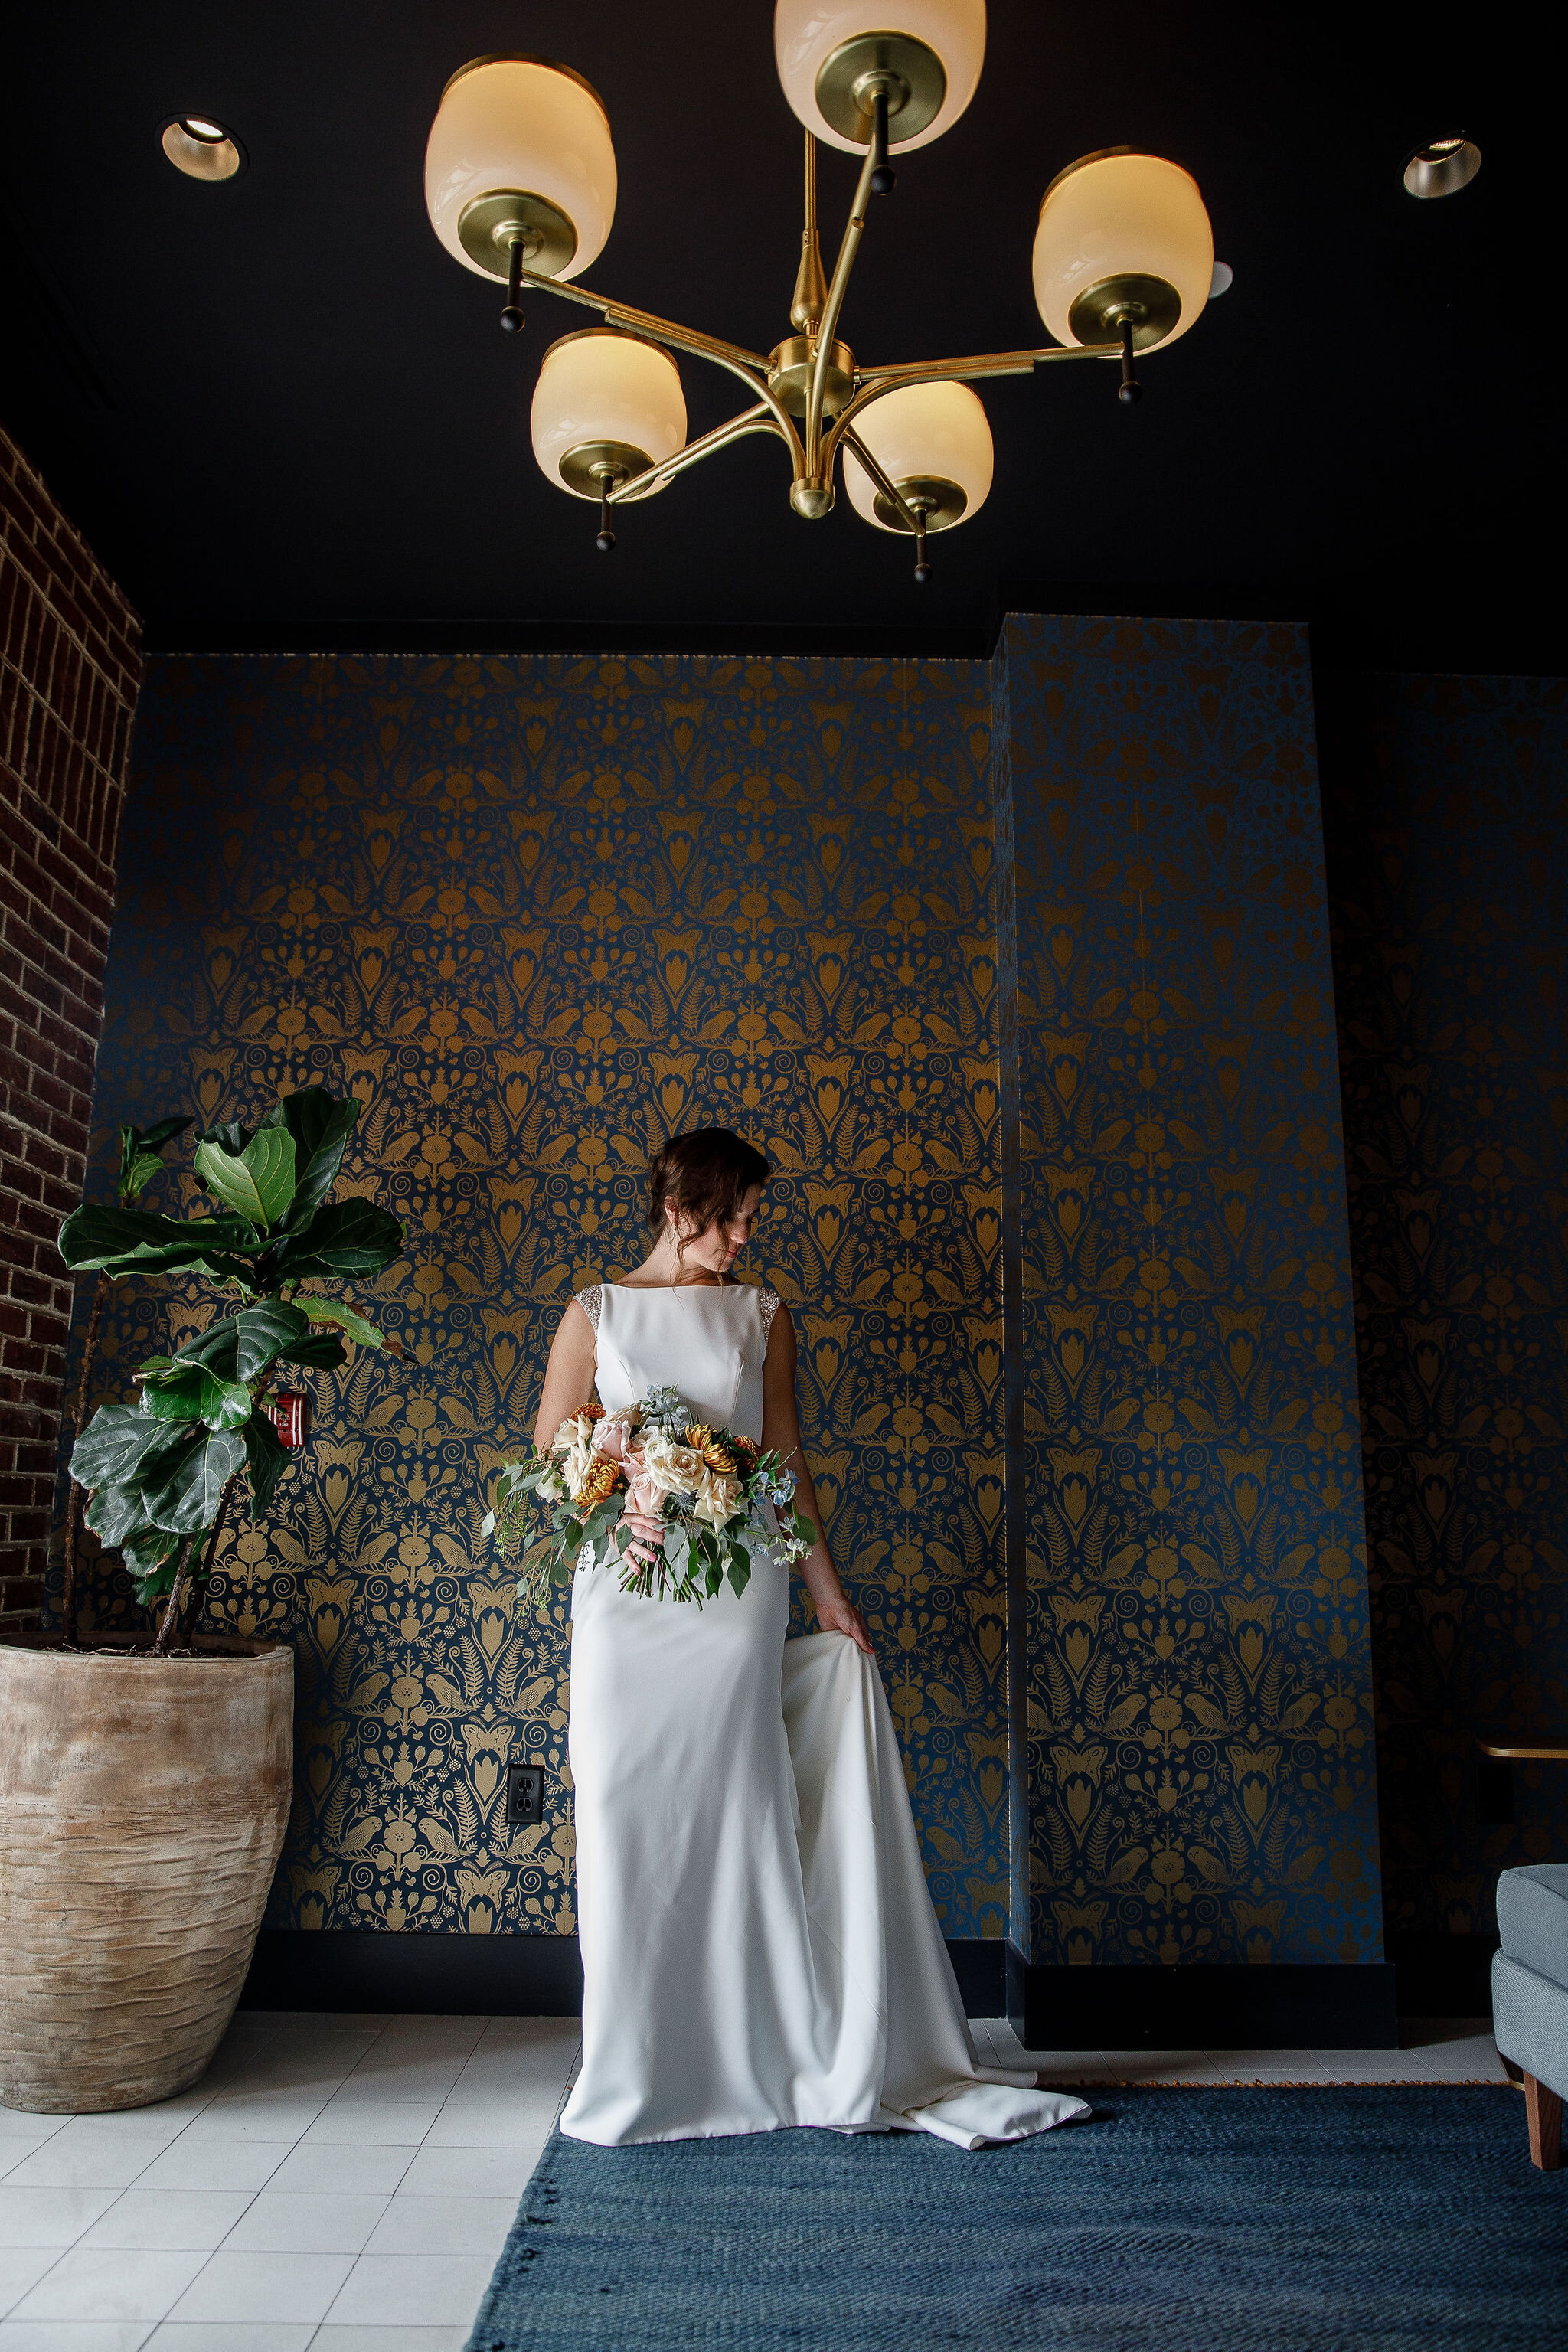 ivory-and-beau-blog-couple-and-florals-shannon-and-mike-wedding-savannah-wedding-planner-savannah-florist-savannah-wedding-southern-florist-southern-wedding-alida-hotel-156.jpg